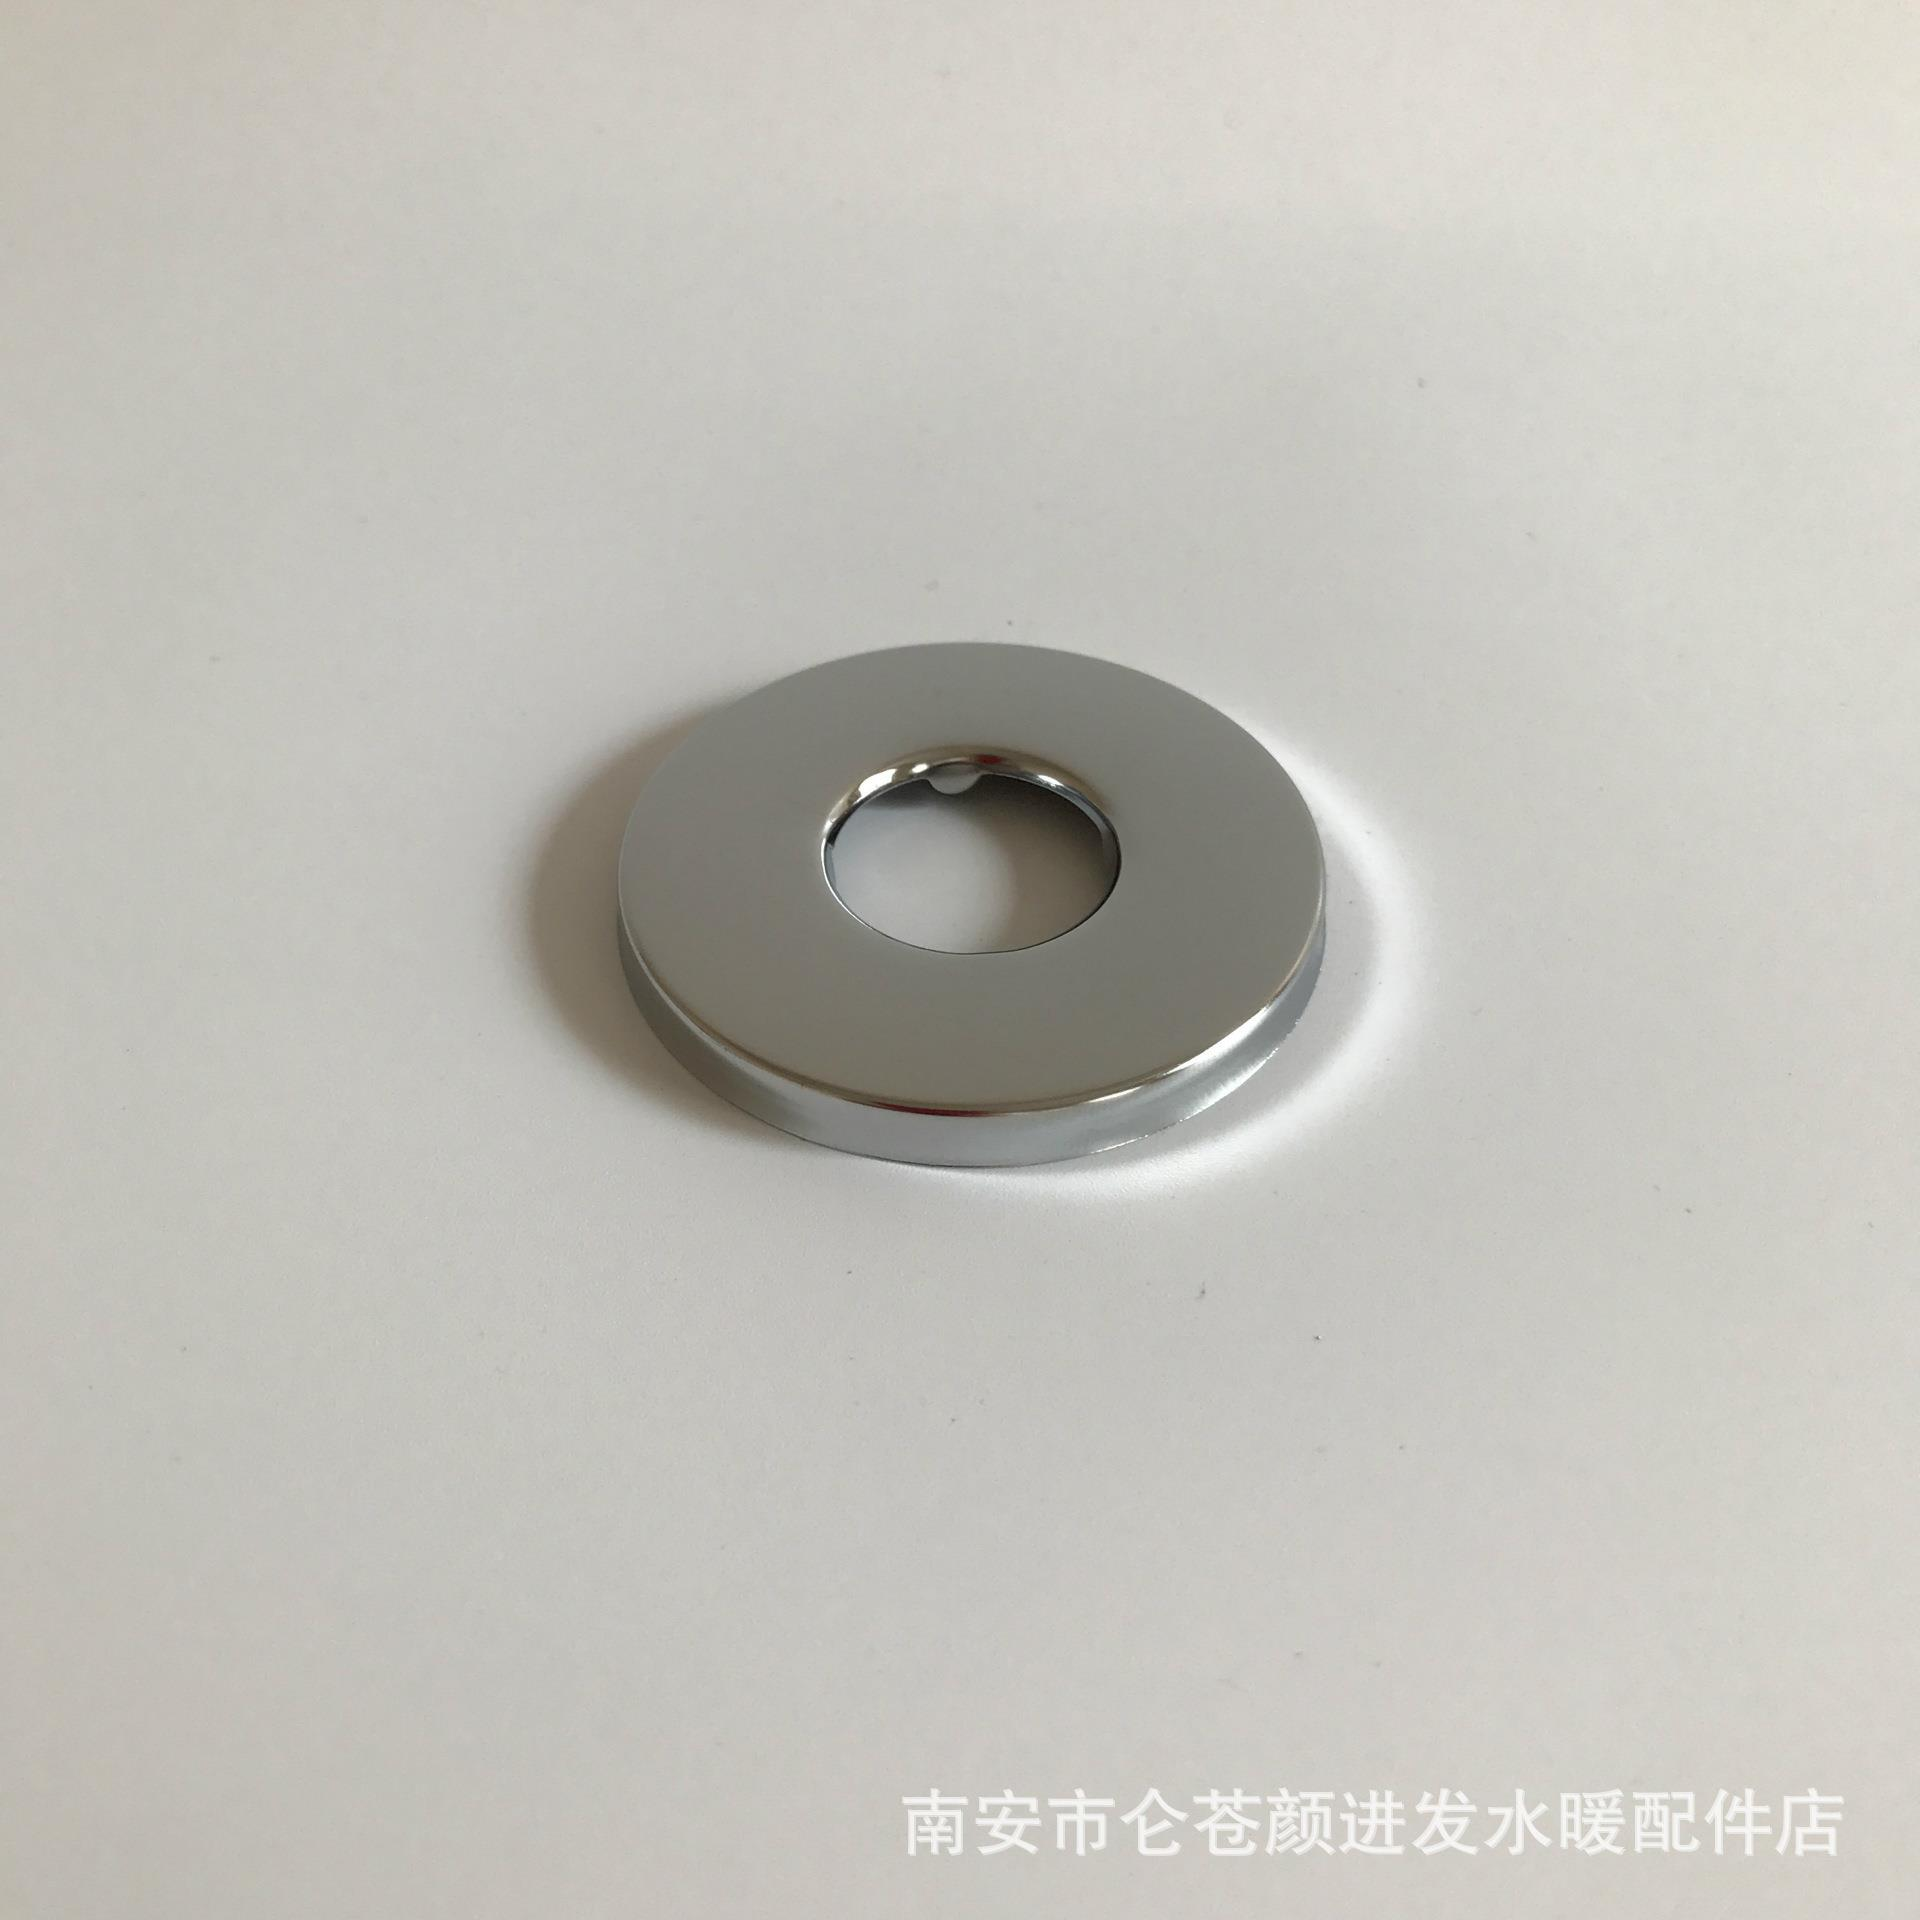 Stainless Steel 201 Plating Widening (52MM) 4 Angle Valve Faucet Decorative Cover Cover Ugly Cover Plumbing Fittings